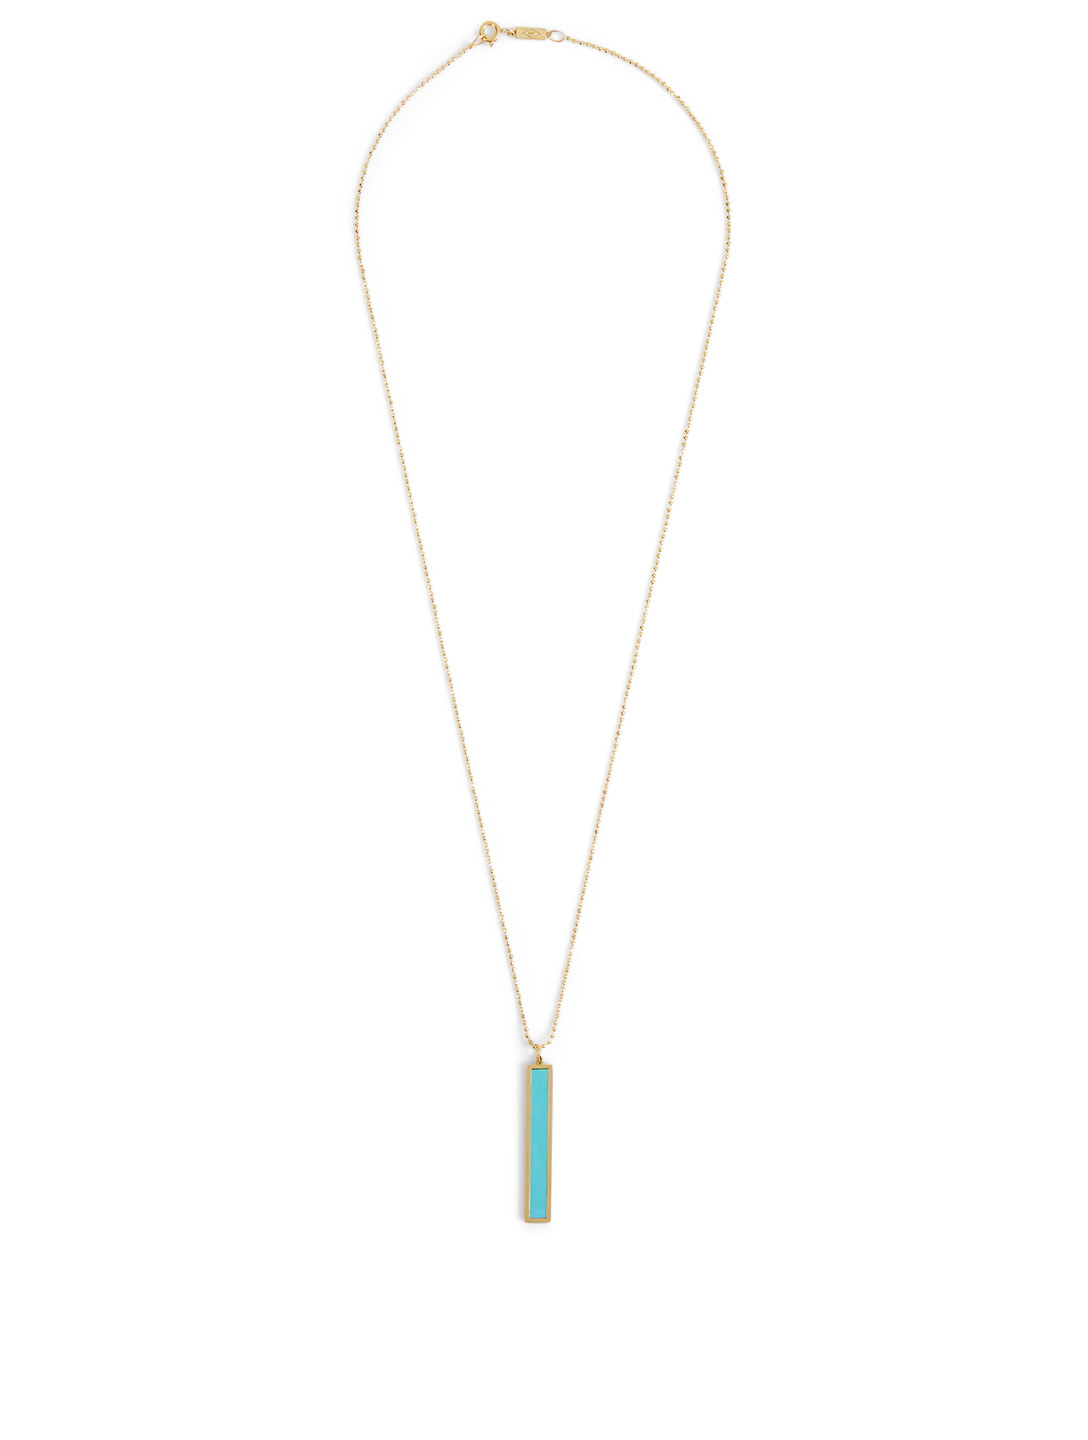 JENNIFER MEYER Large Gold Bar Pendant Necklace With Turquoise Inlay Women's Metallic